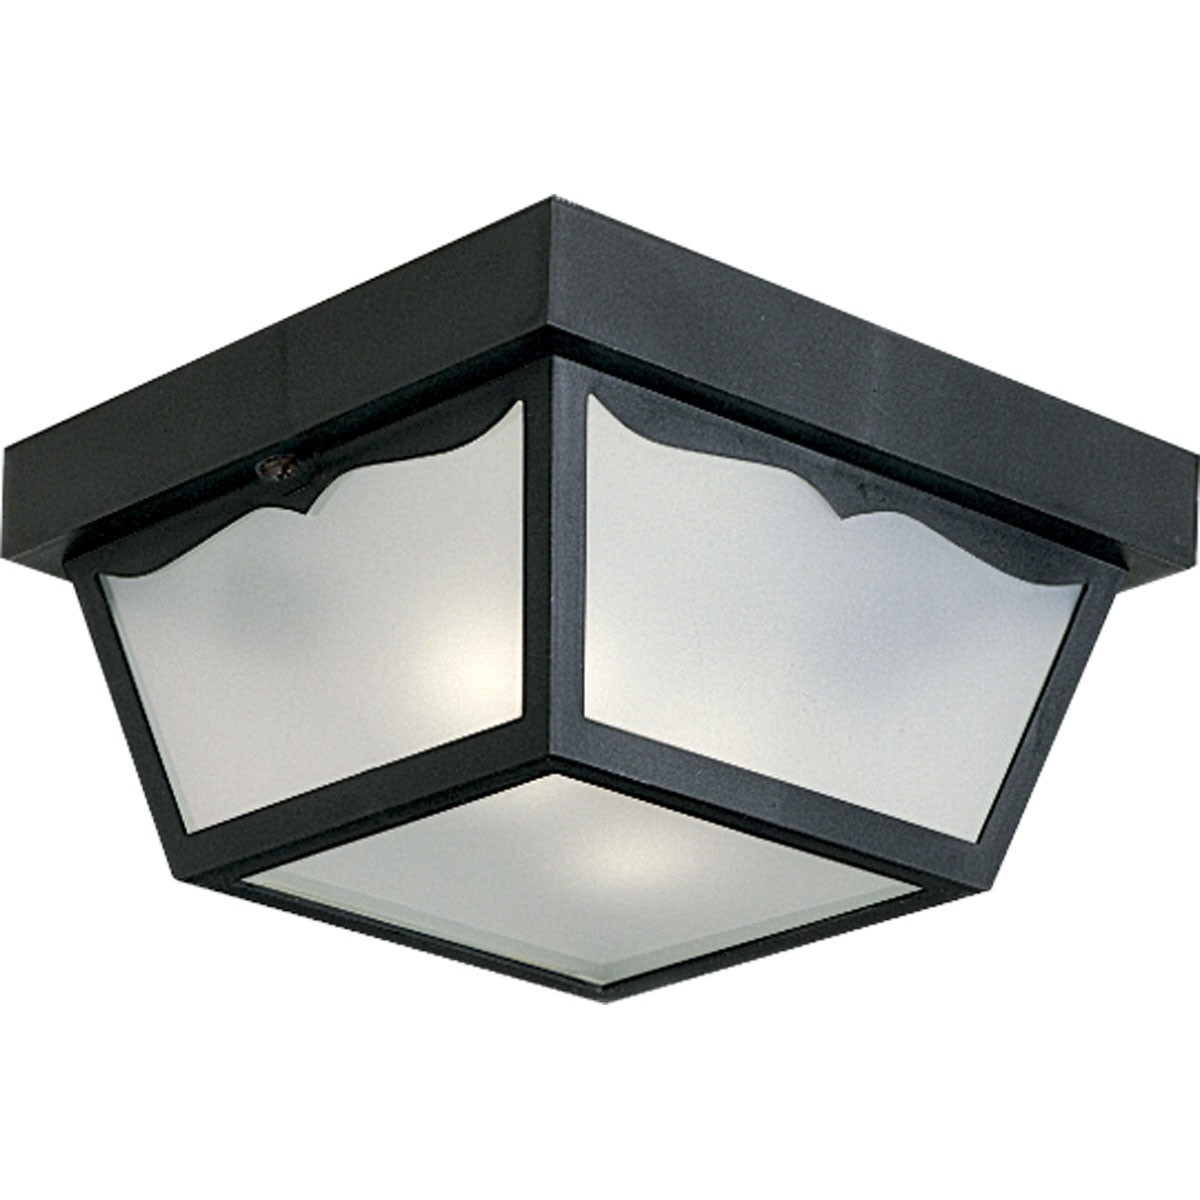 Outdoor Ceiling Lights Intended For Famous 60W Outdoor Flush Mount Non Metallic Ceiling Light – Progress (View 4 of 20)